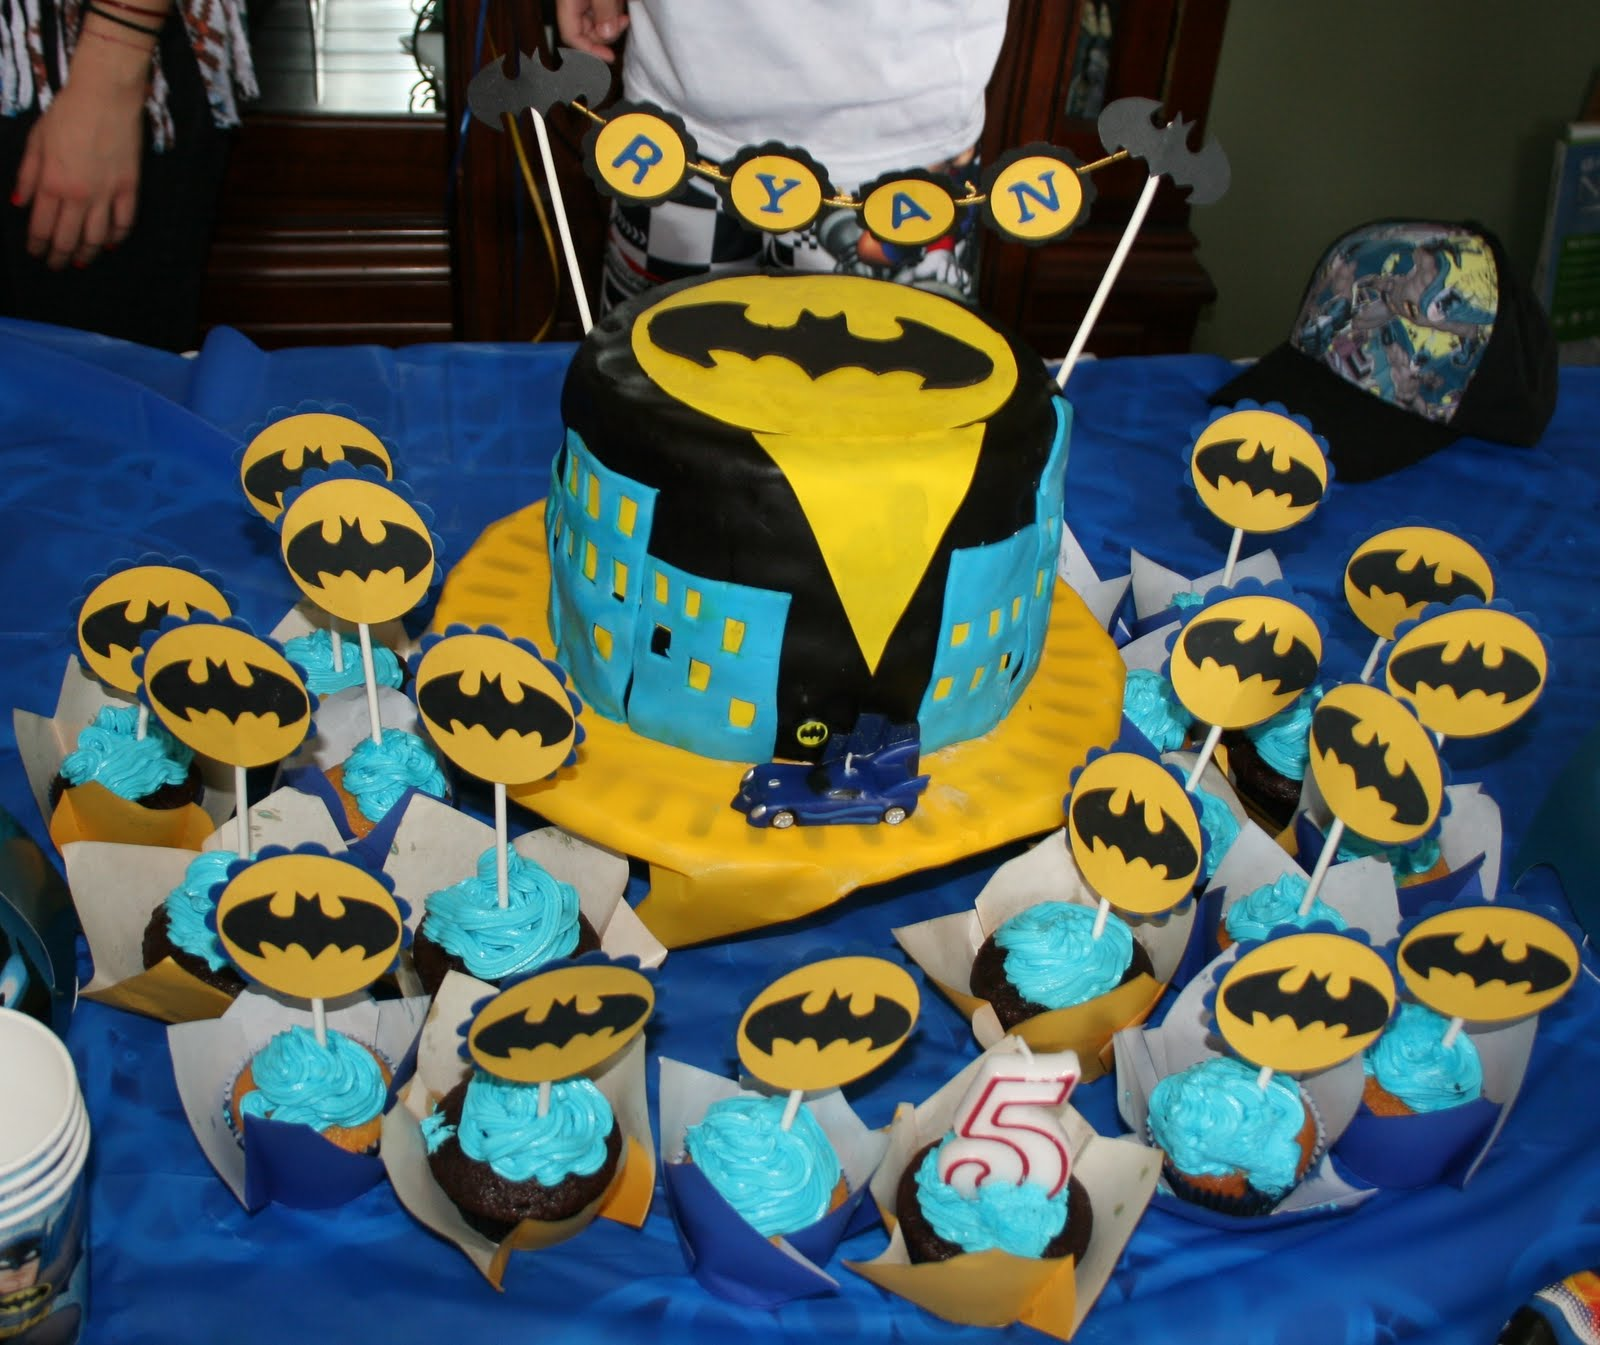 All The Days Of Our Lifes Batman Cake